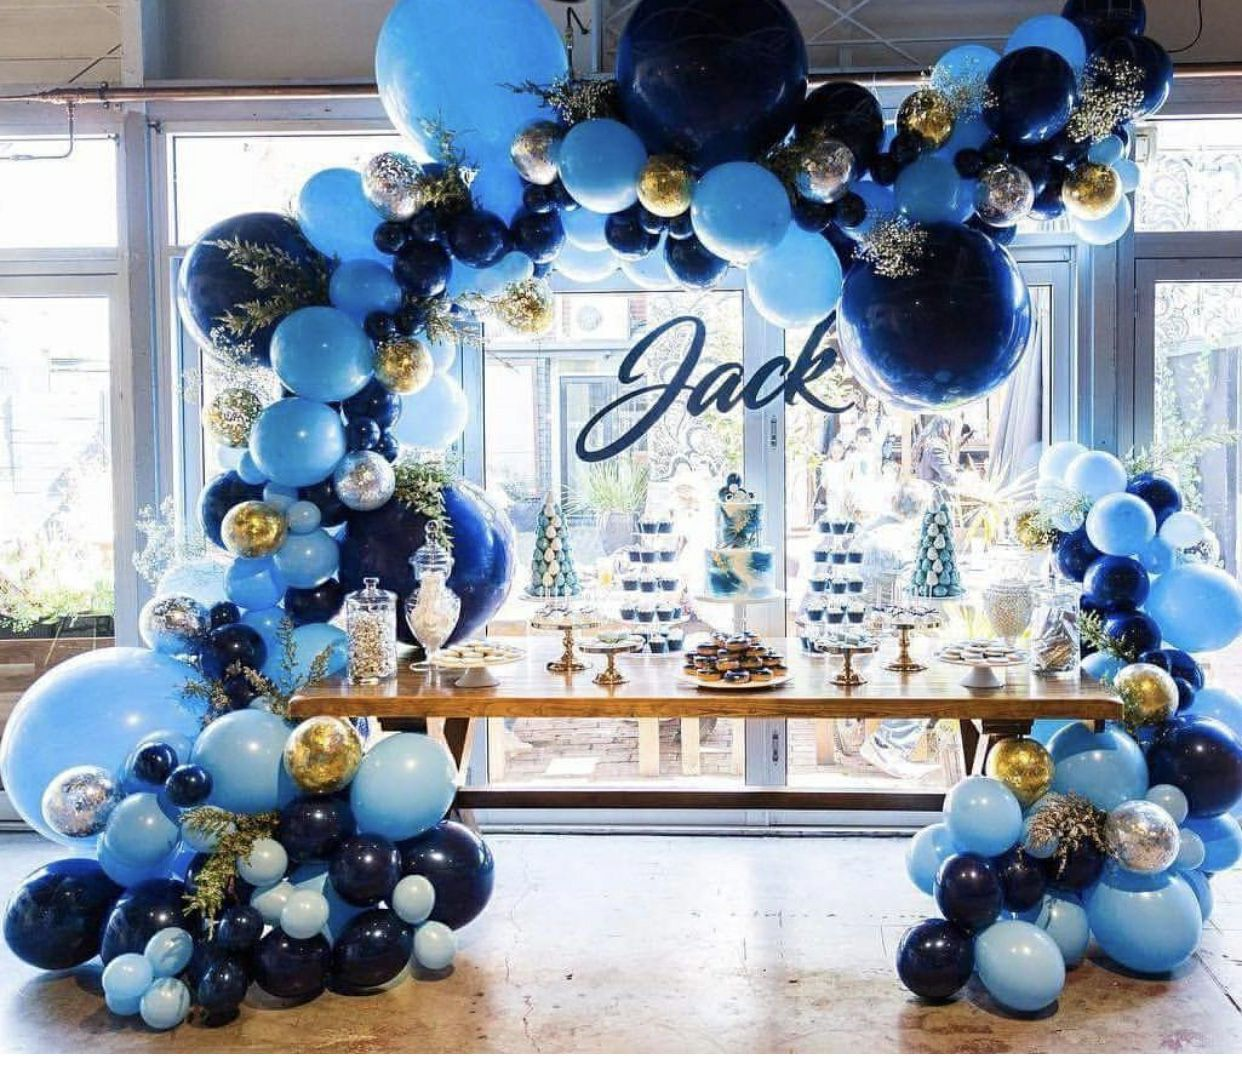 Paper Cut Out Blue Balloons First Birthday Decoration: Delightful Navy & Blue Organic Arch Spaced Design With